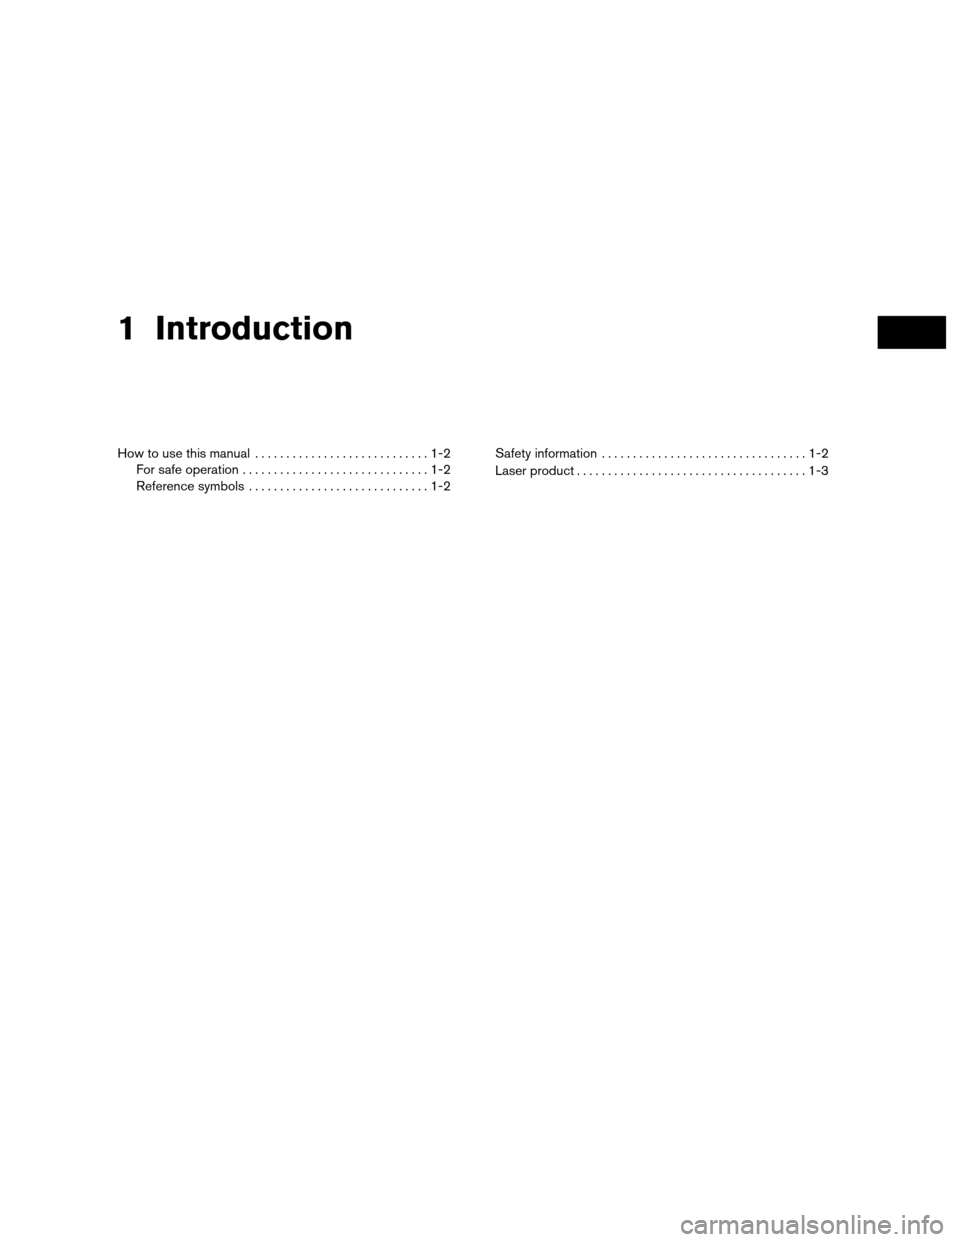 NISSAN NV200 2012 1.G LC Navigation Manual 1 Introduction How to use this manual............................1-2 For safe operation ..............................1-2 Reference symbols .............................1-2 Safety information ........